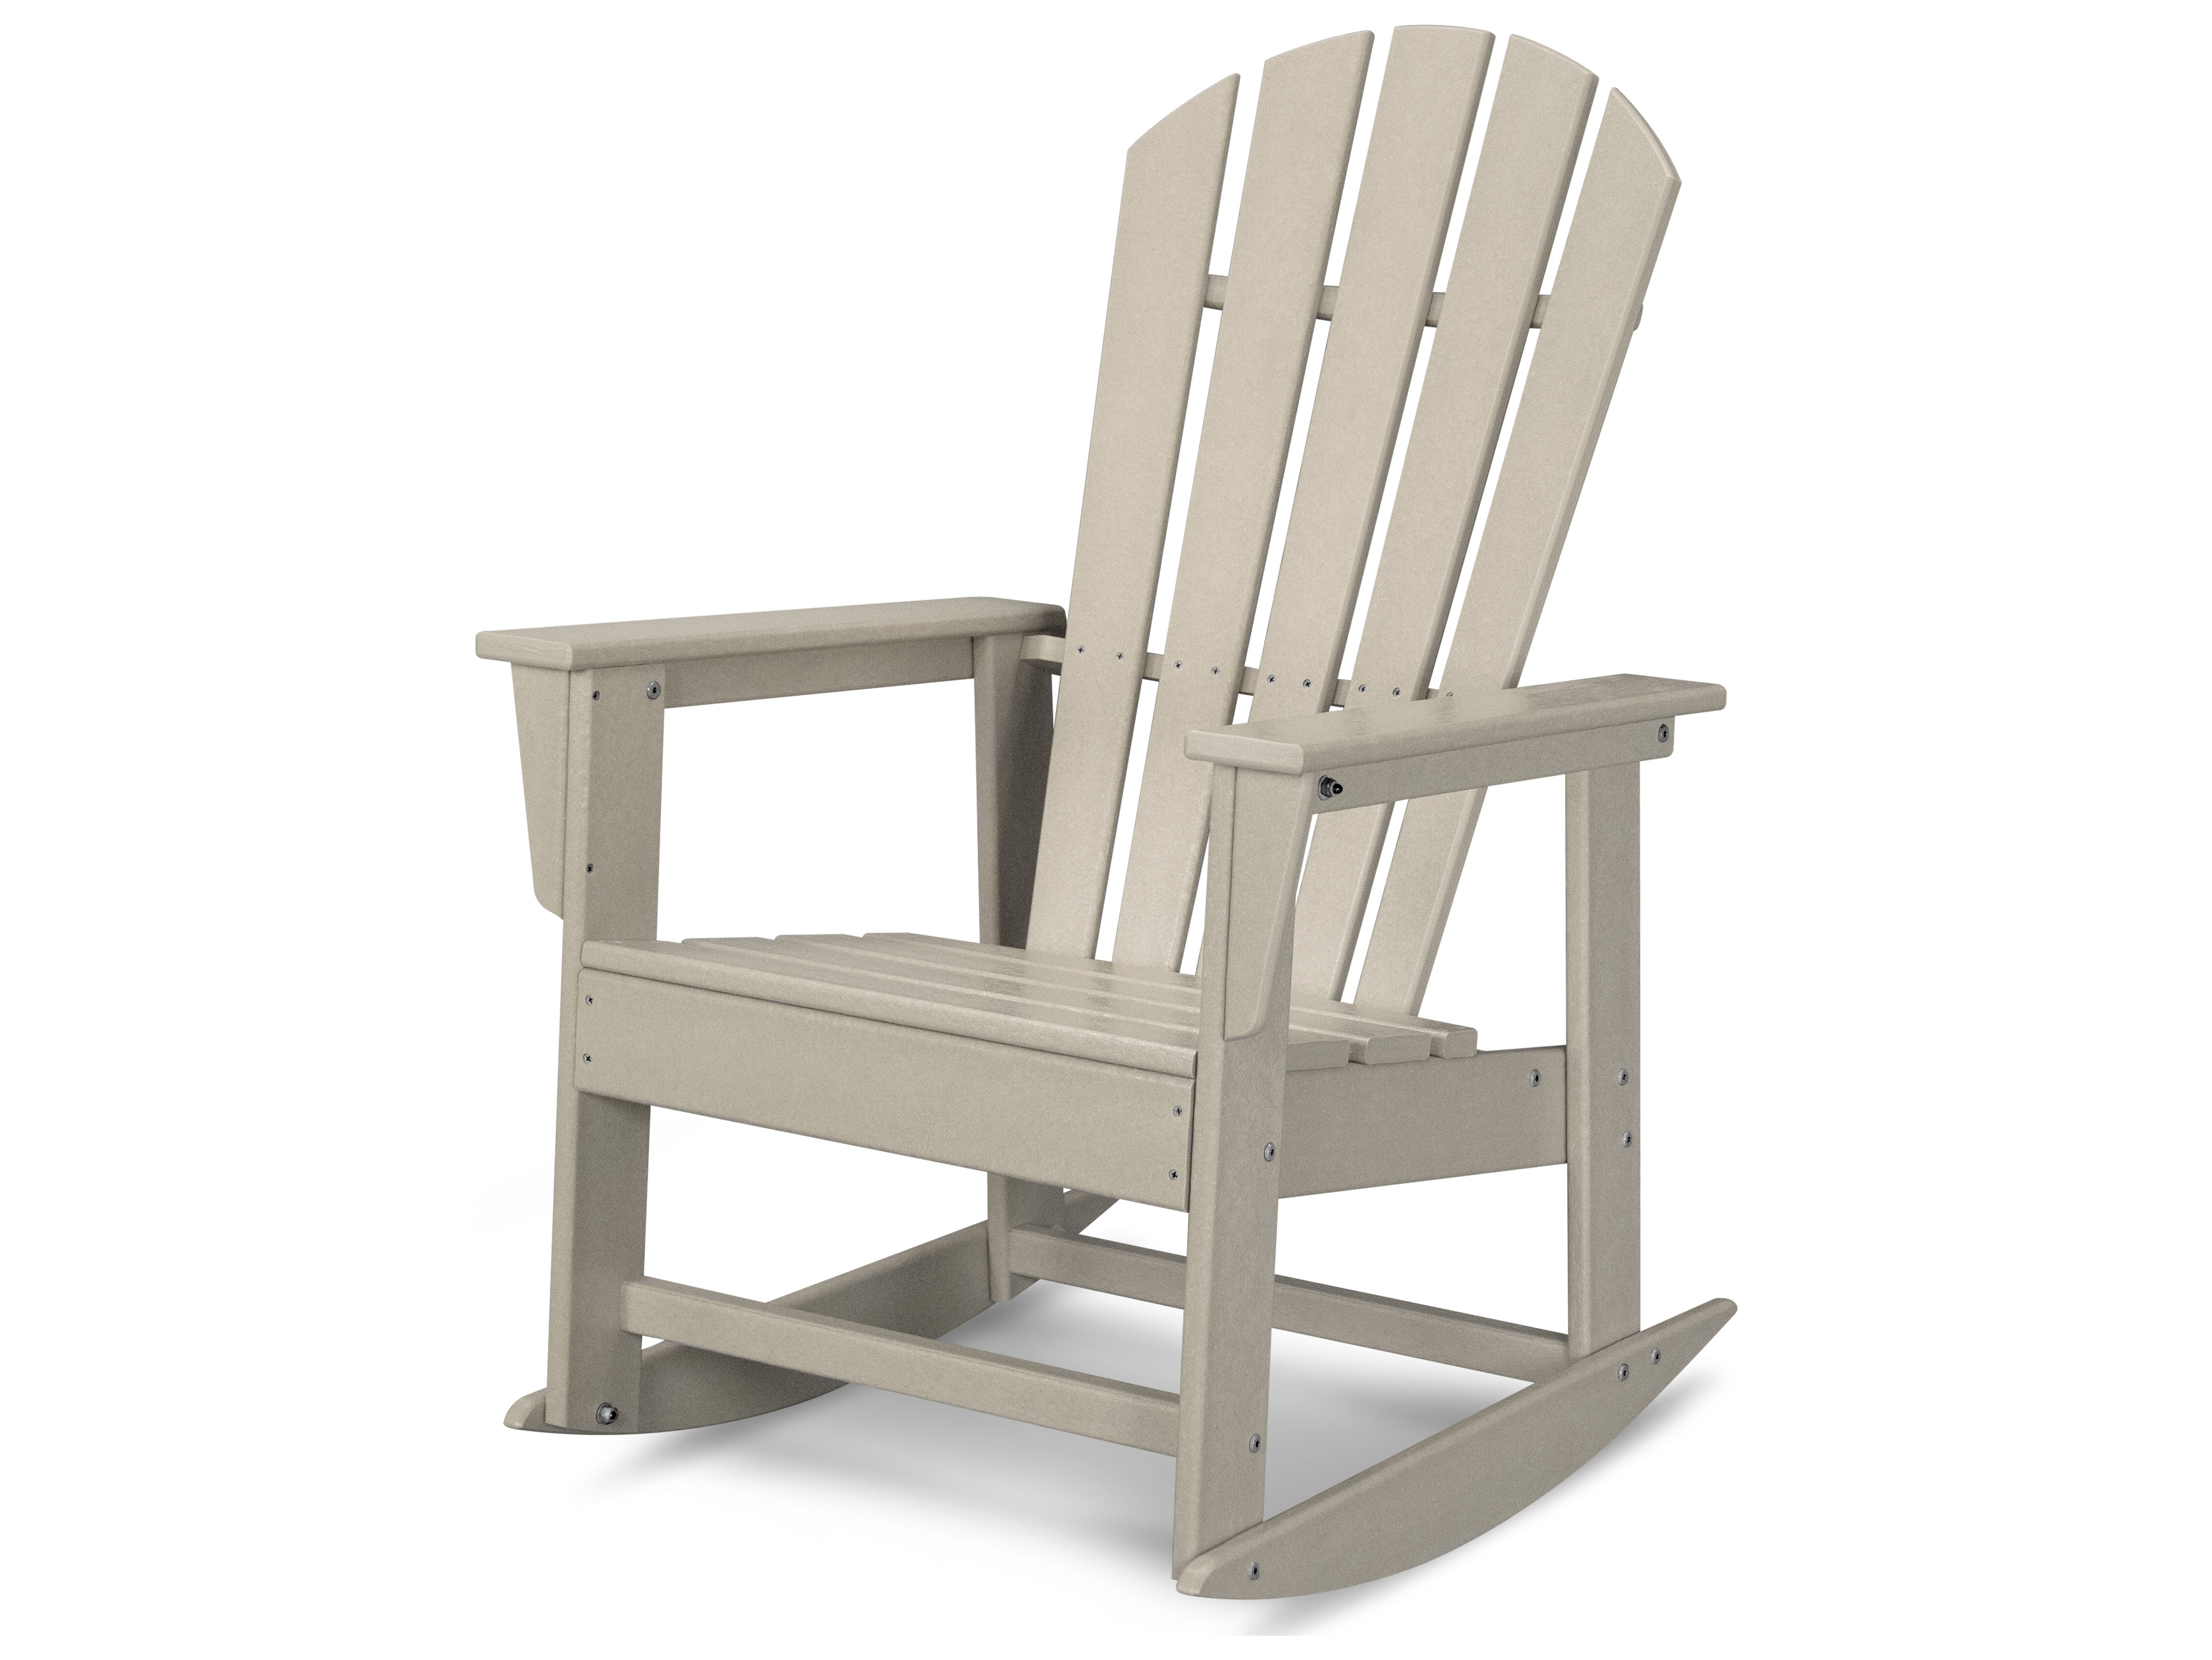 plastic lawn chairs canada comfortable chair for gaming polywood south beach recycled adirondack rocker